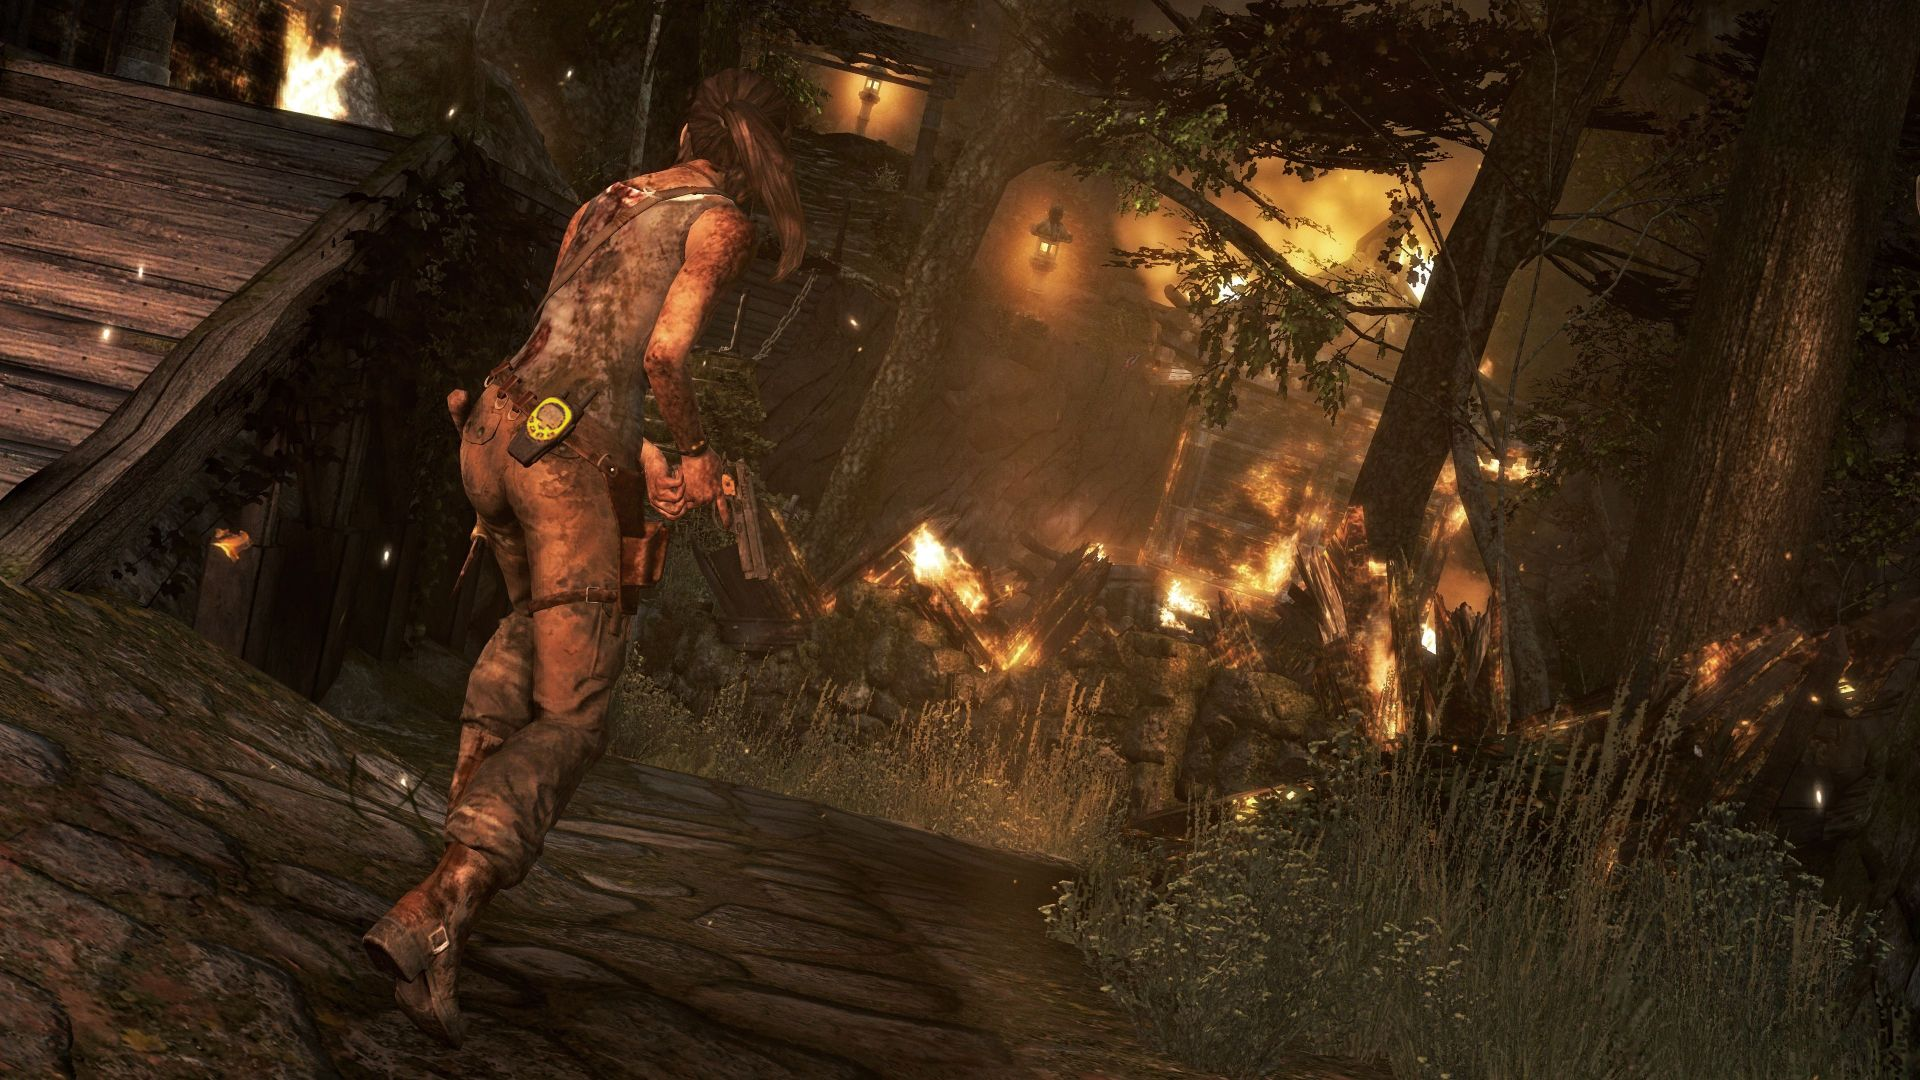 Tomb Raider (2013) v1.1.730.0 (+11 Trainer) [FLiNG]